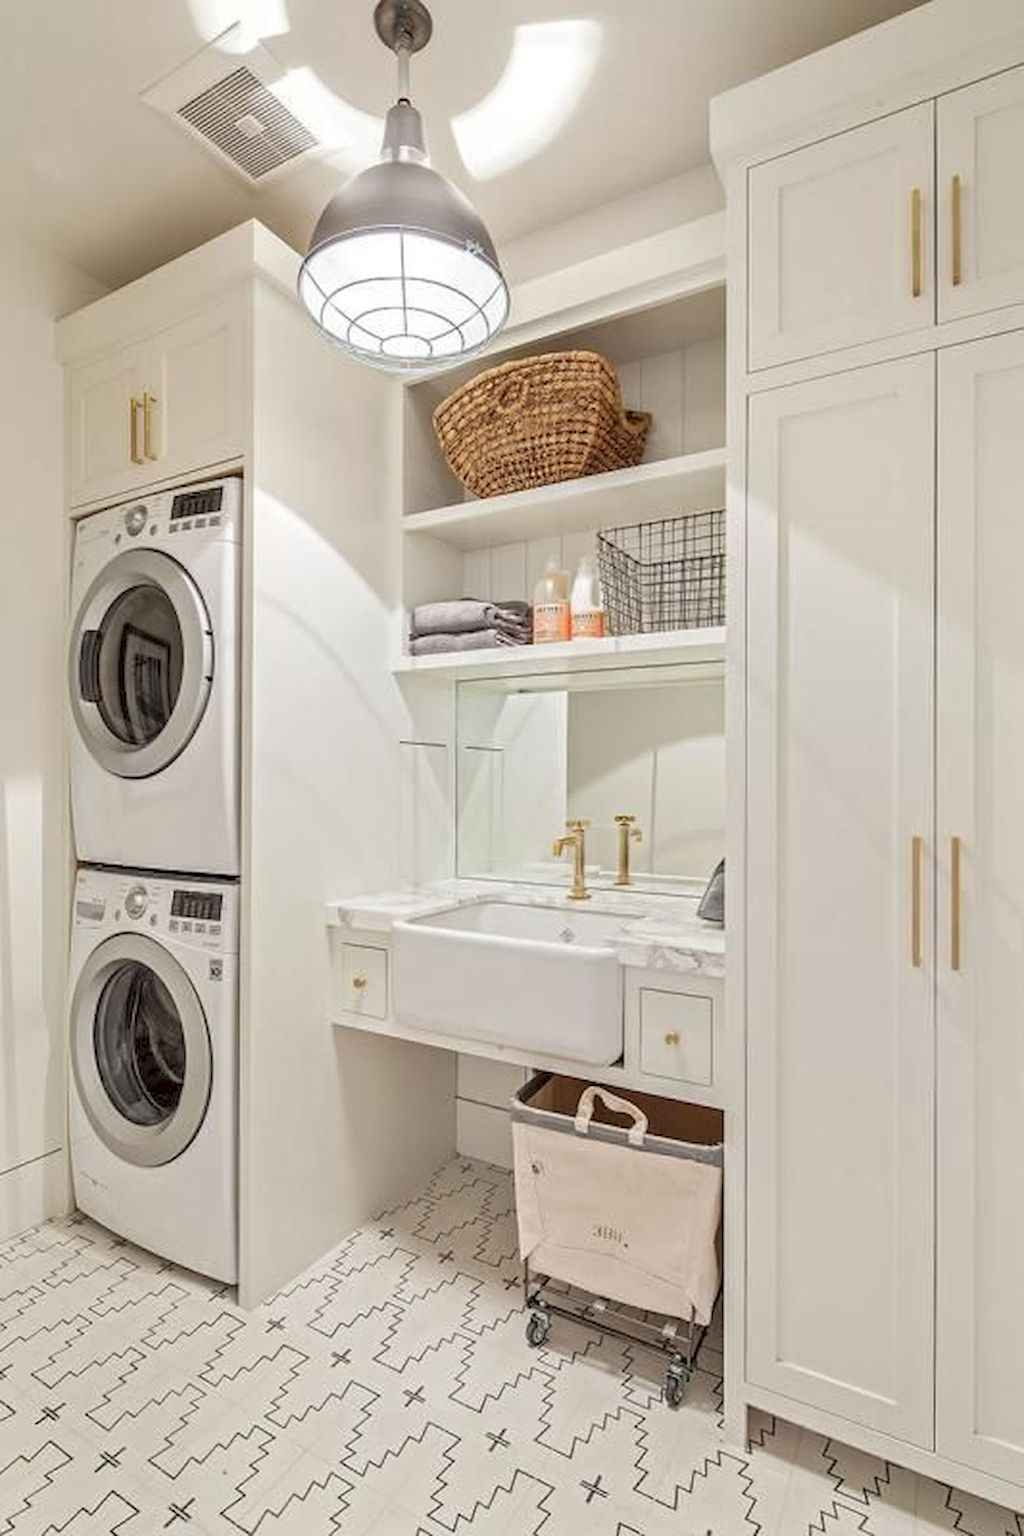 55 diy laundry room storage shelves ideas with images